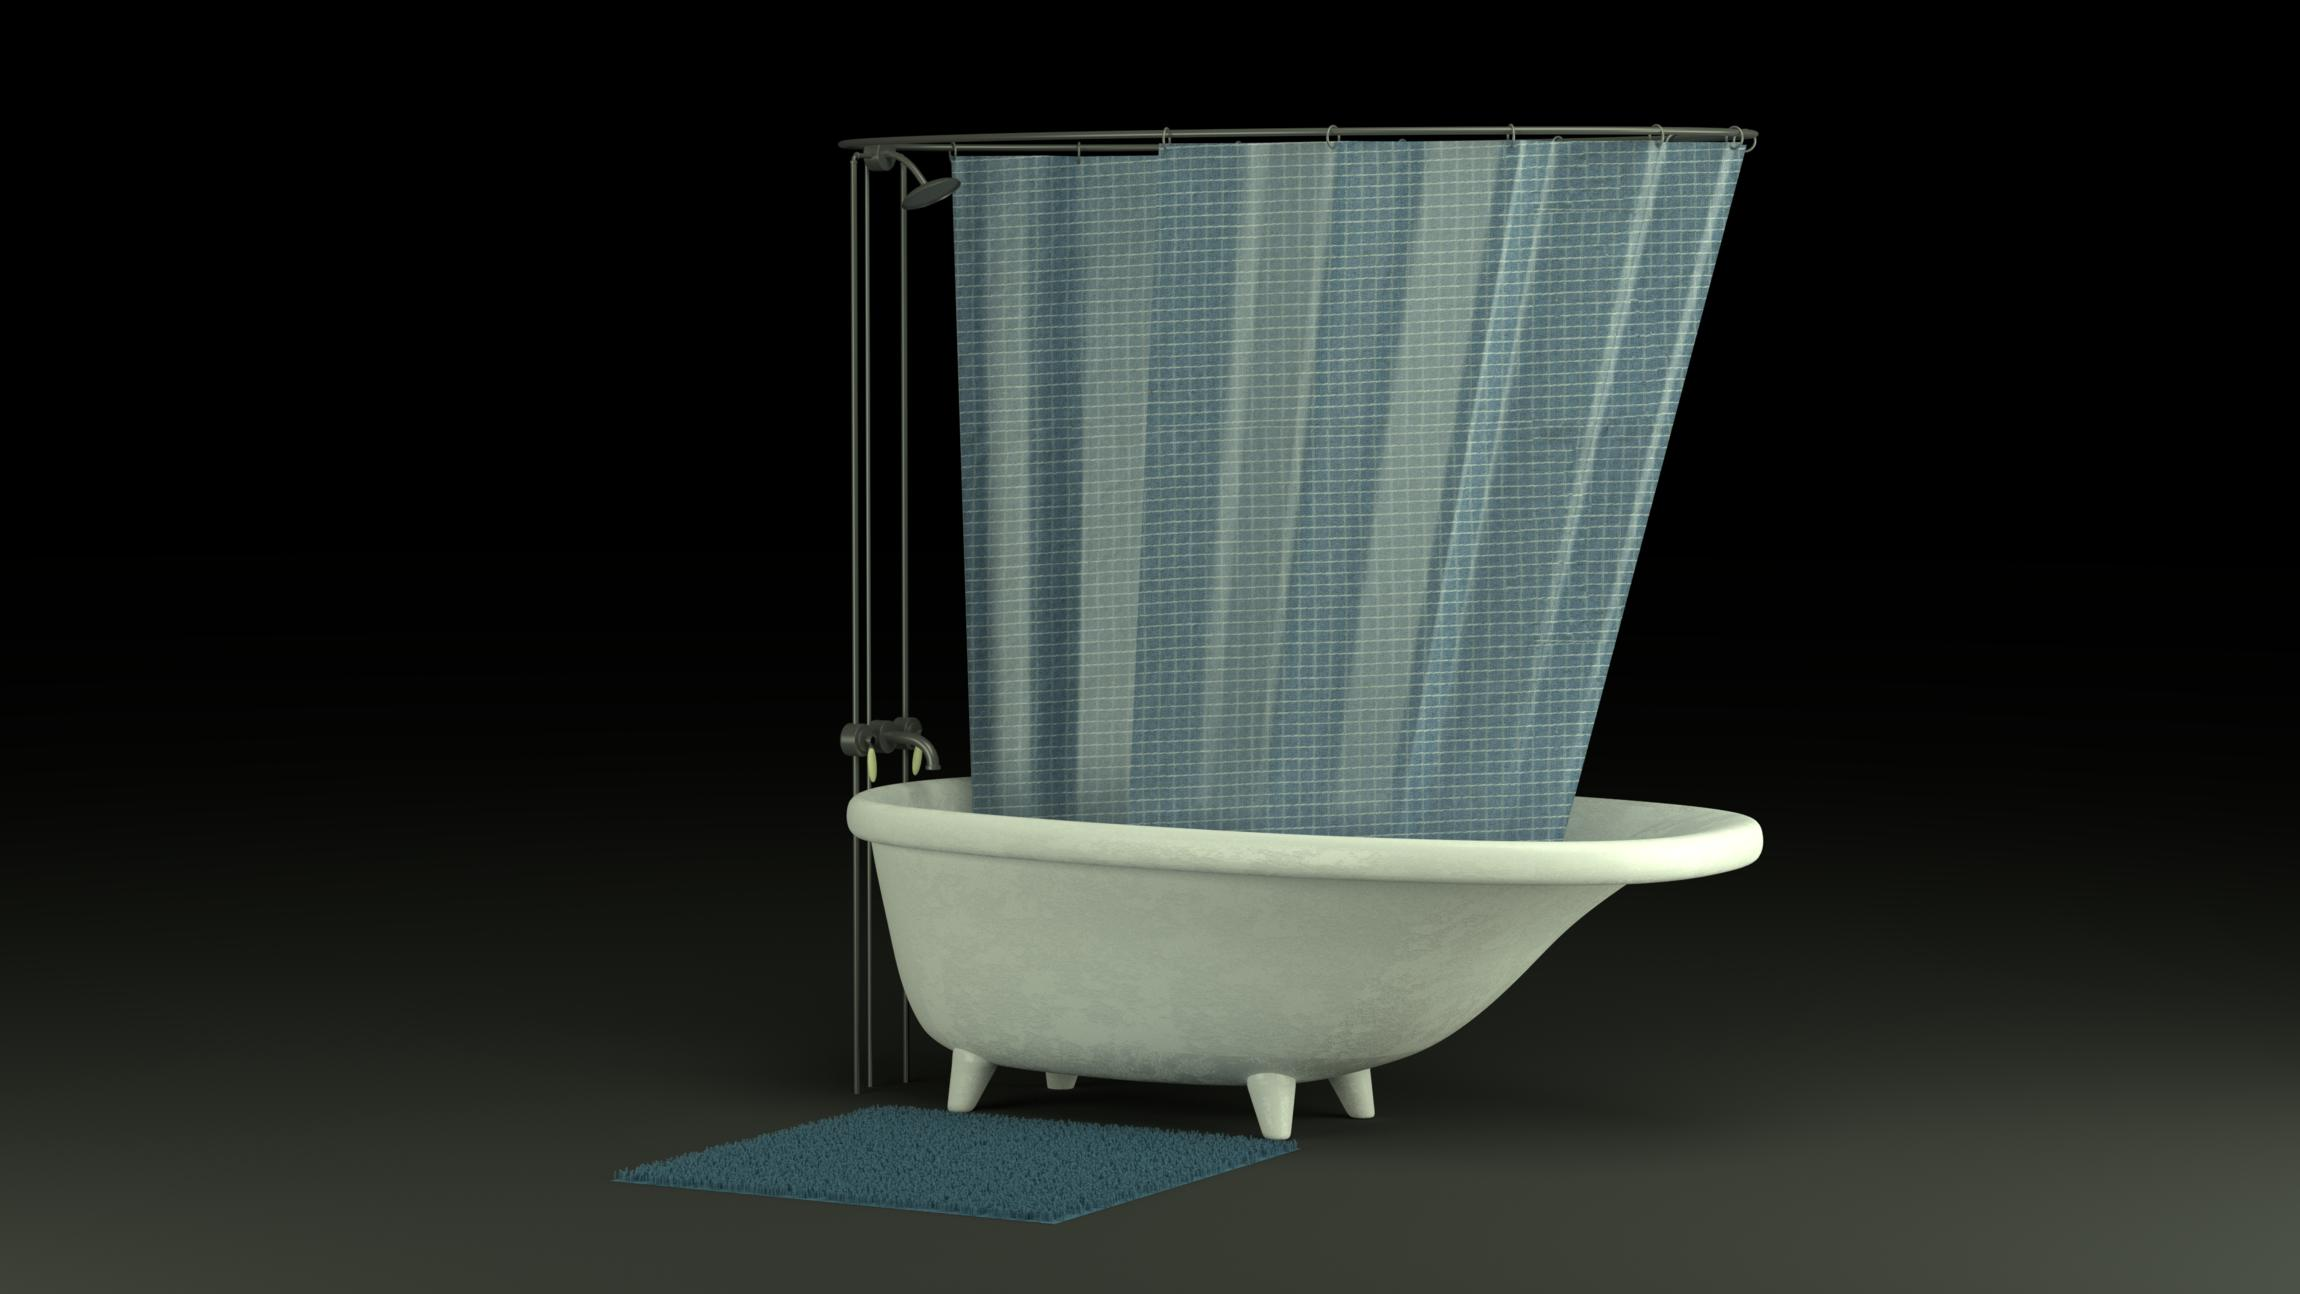 Old Fashioned Tub Shower Finished Projects Blender Artists Community